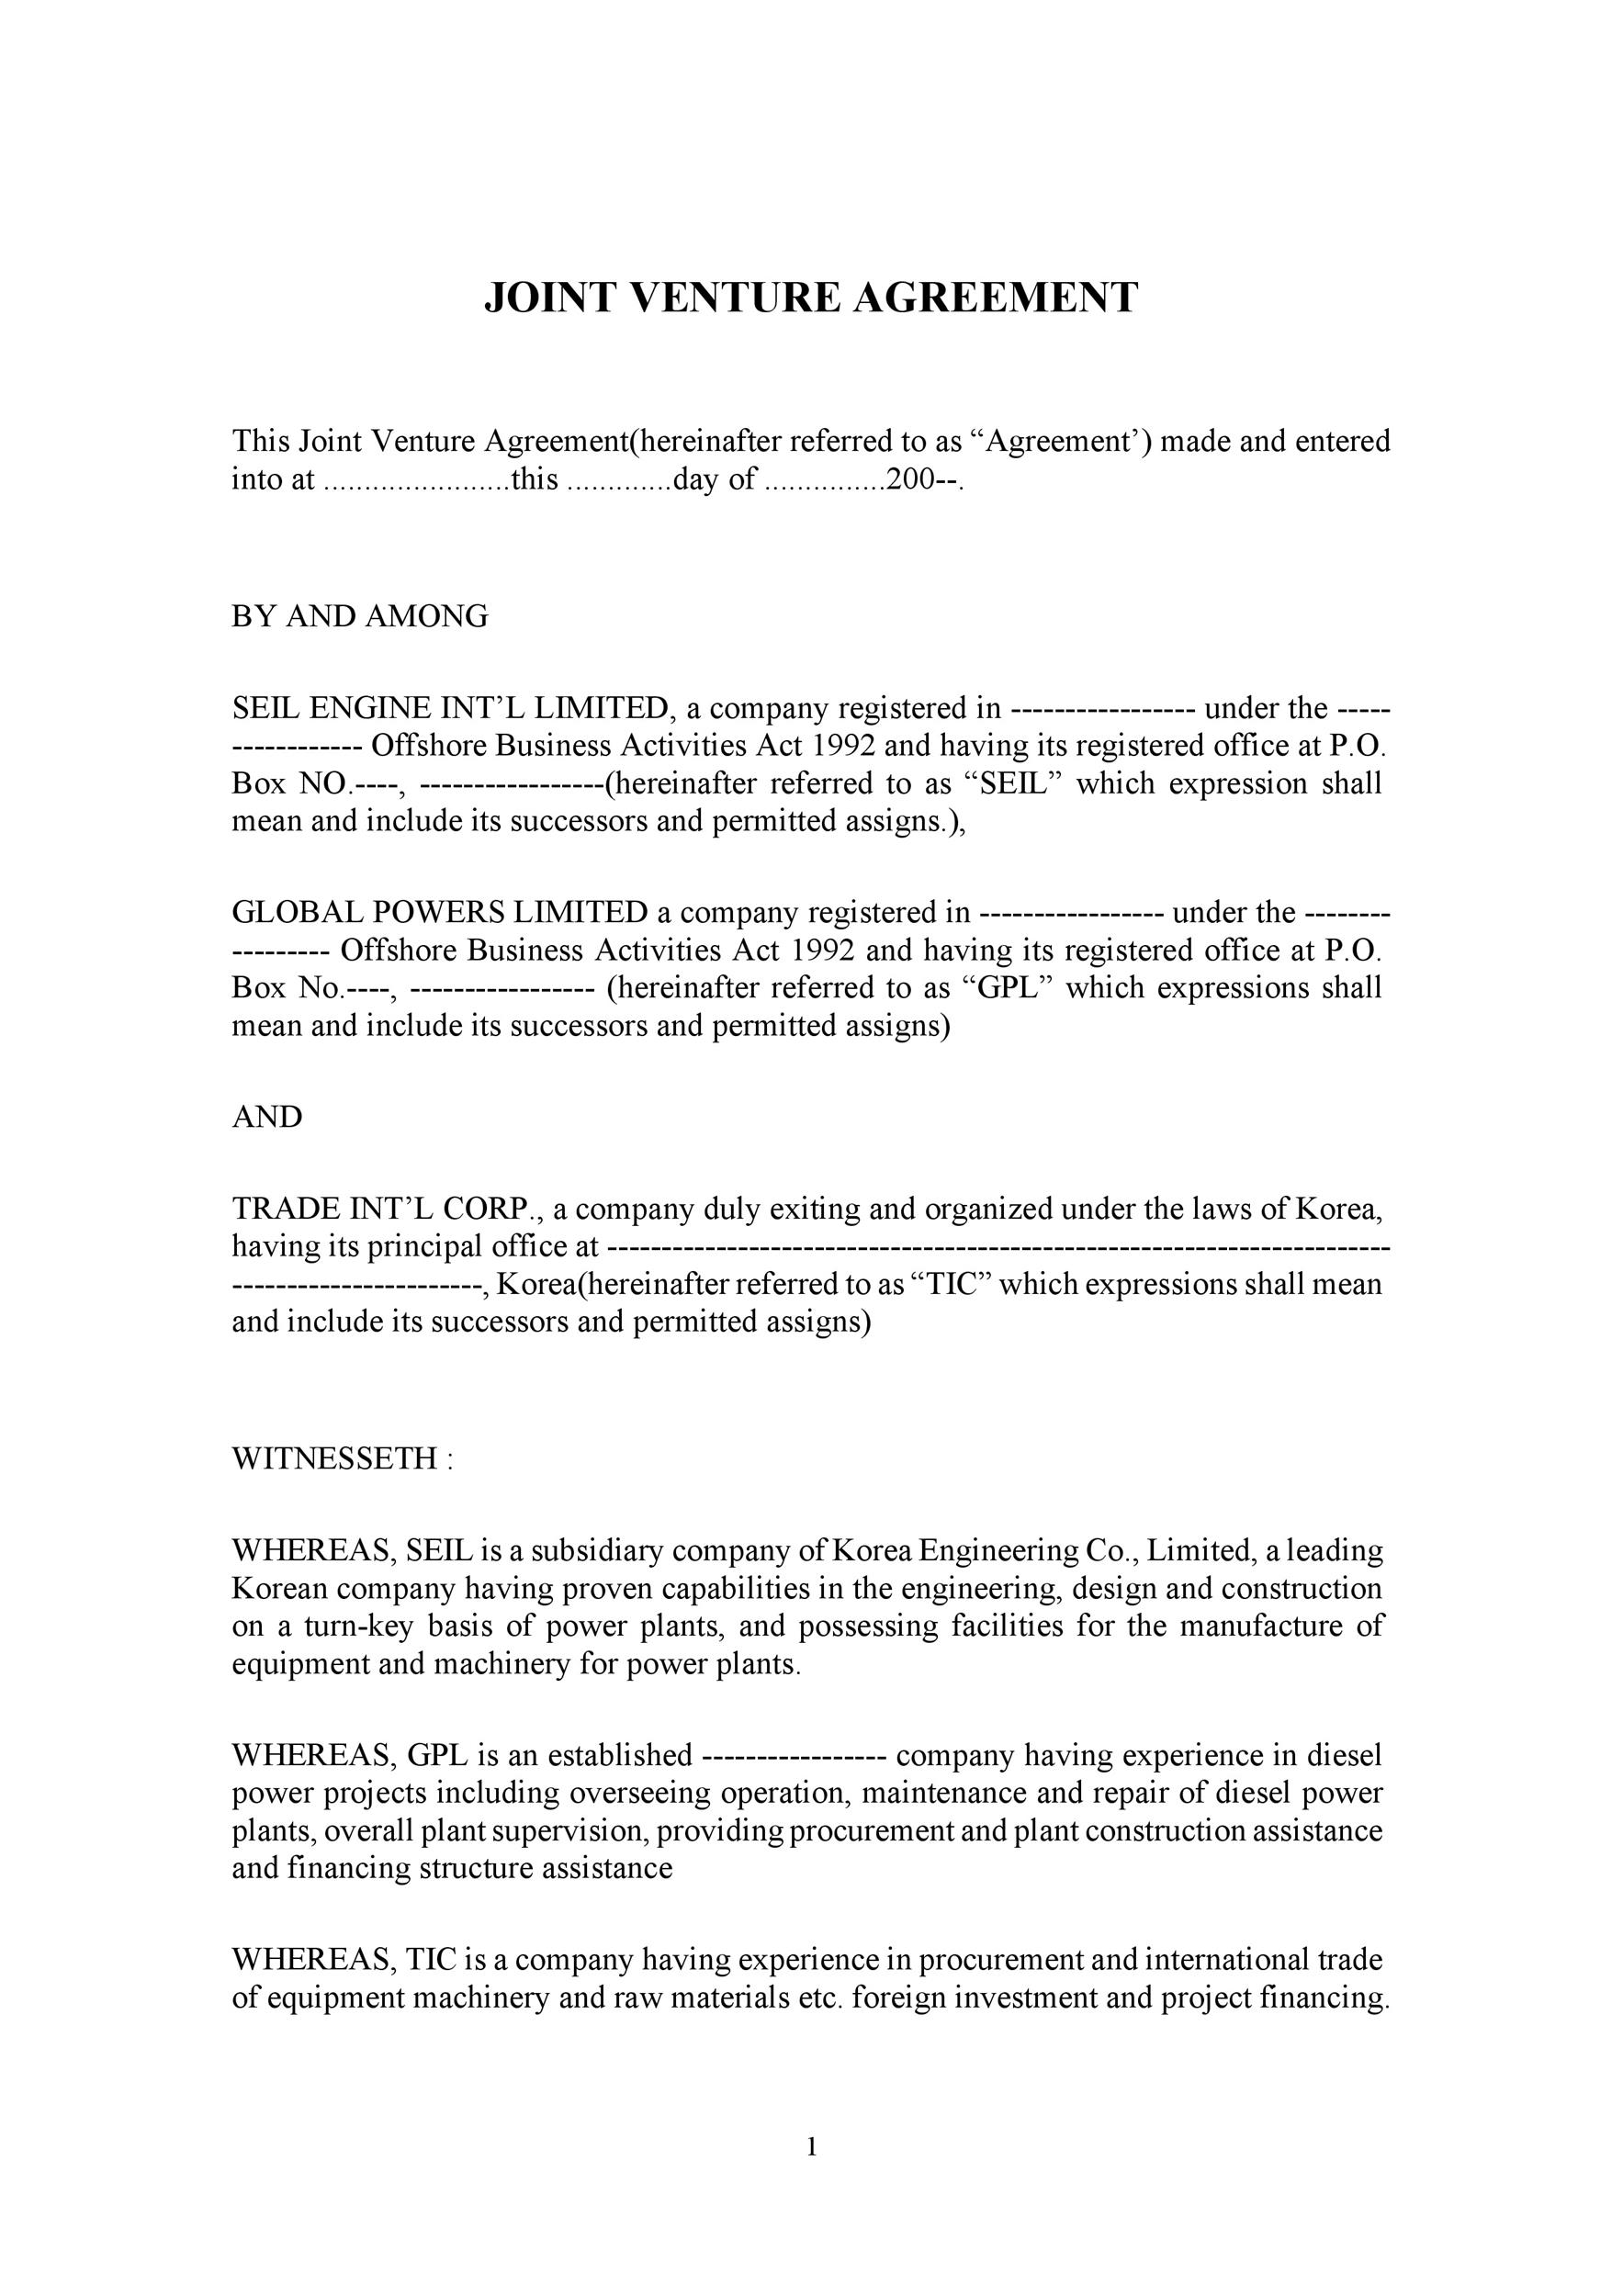 53 Simple Joint Venture Agreement Templates Pdf Doc ᐅ Templatelab